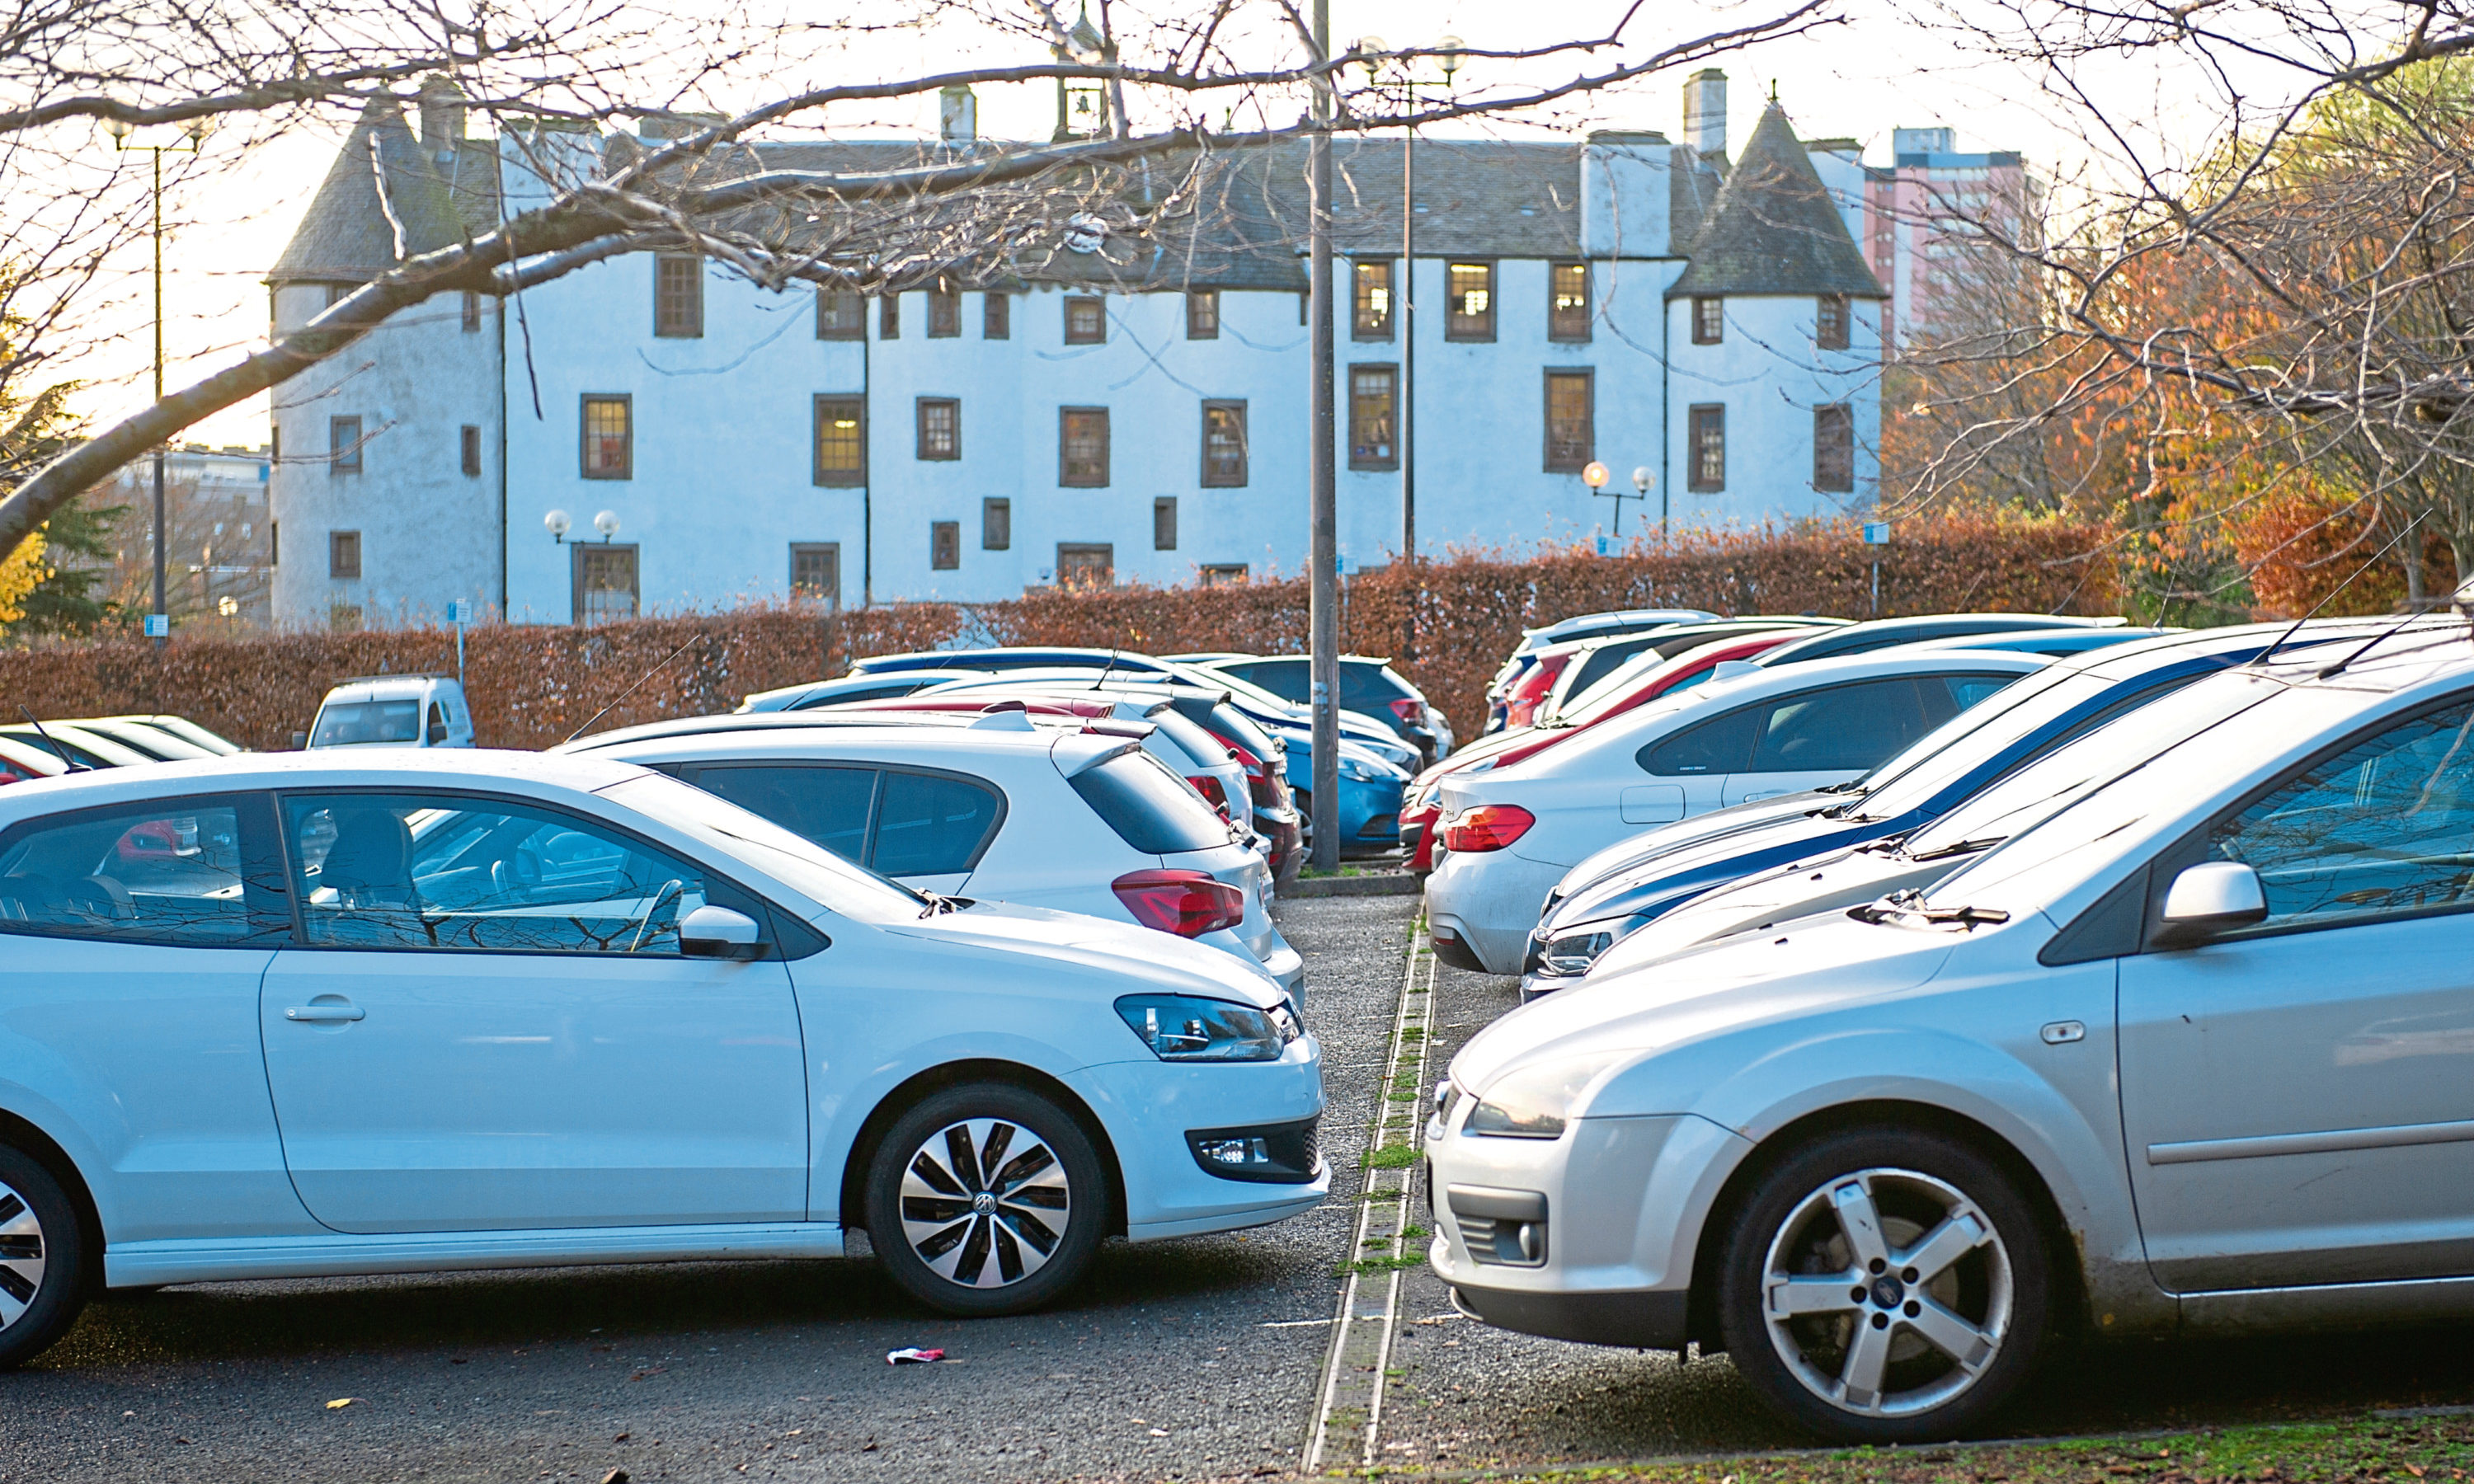 The nearly-full car park, Dudhope Castle, Infirmary Brae, Dundee.